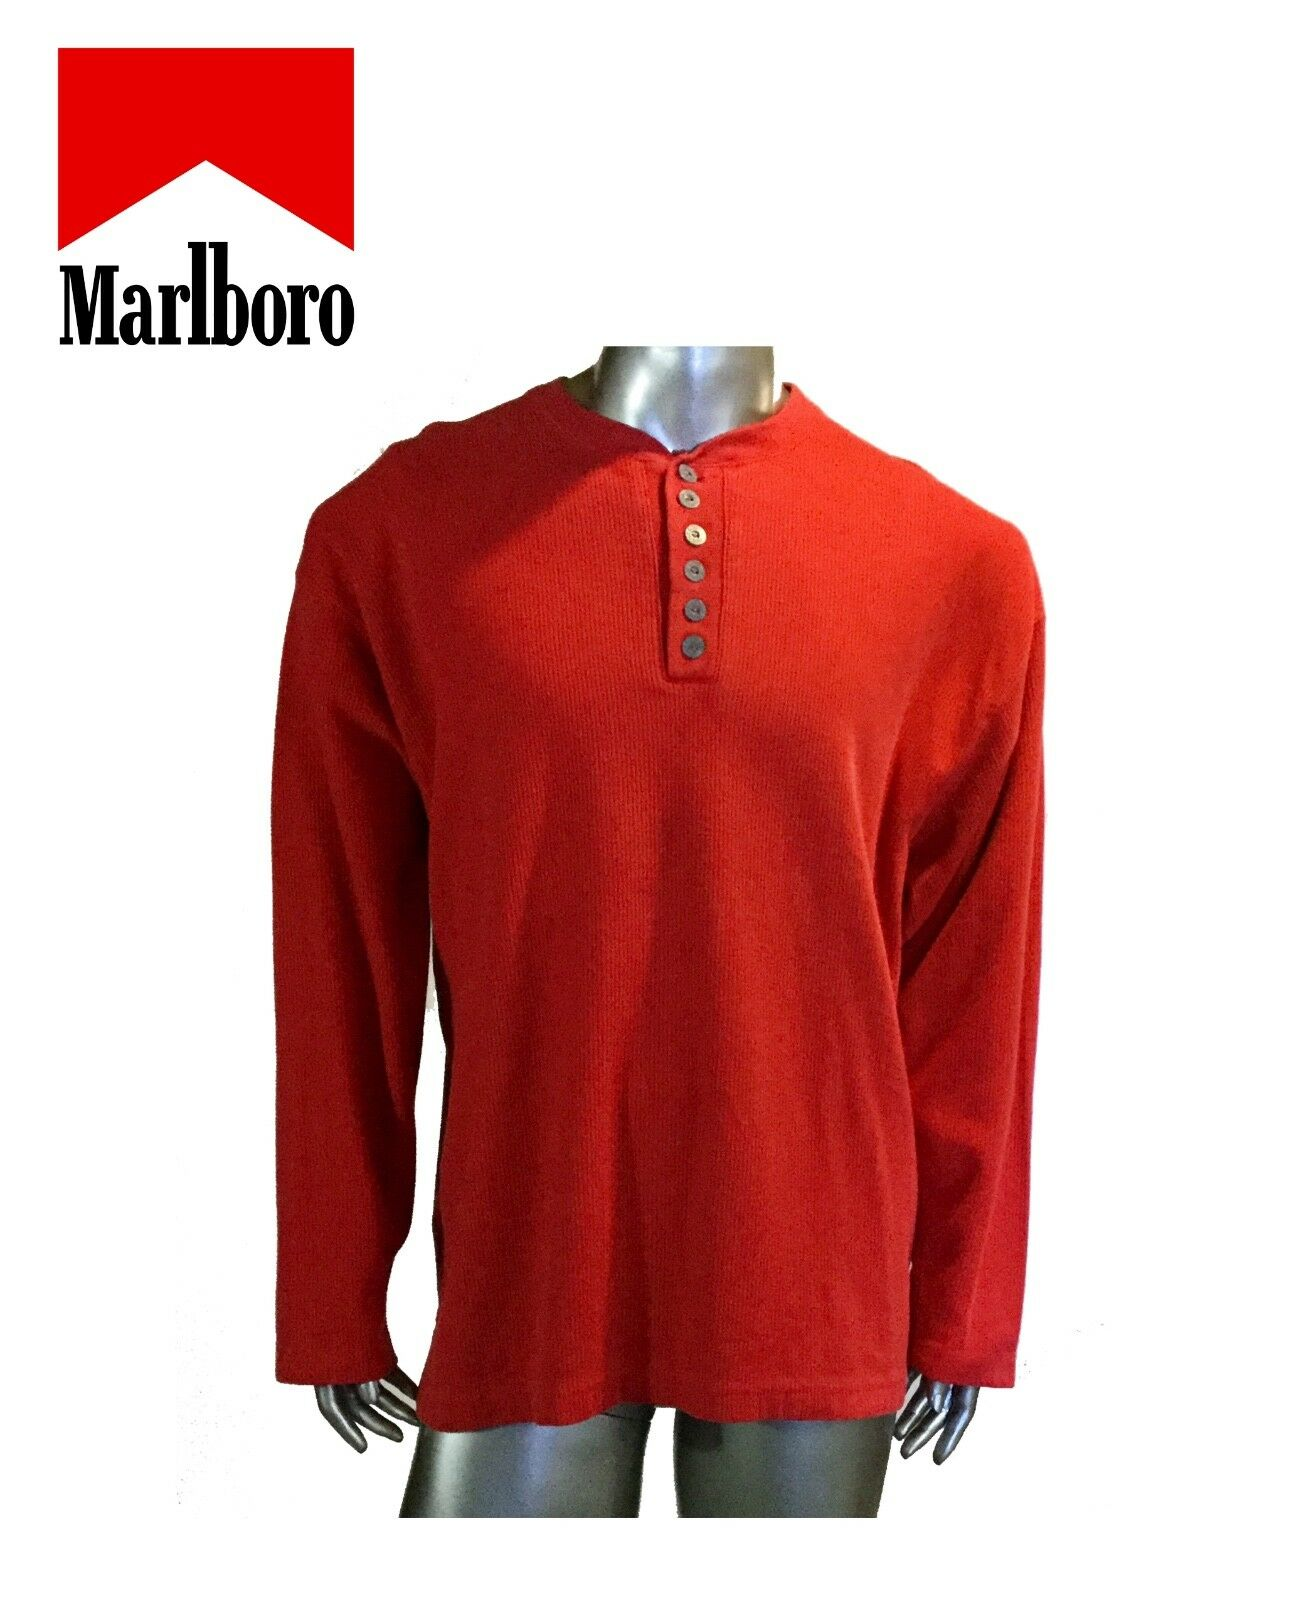 Vintage Unlimited Marlbgold Men's Long Sleeve Shirt Red, Size XXL